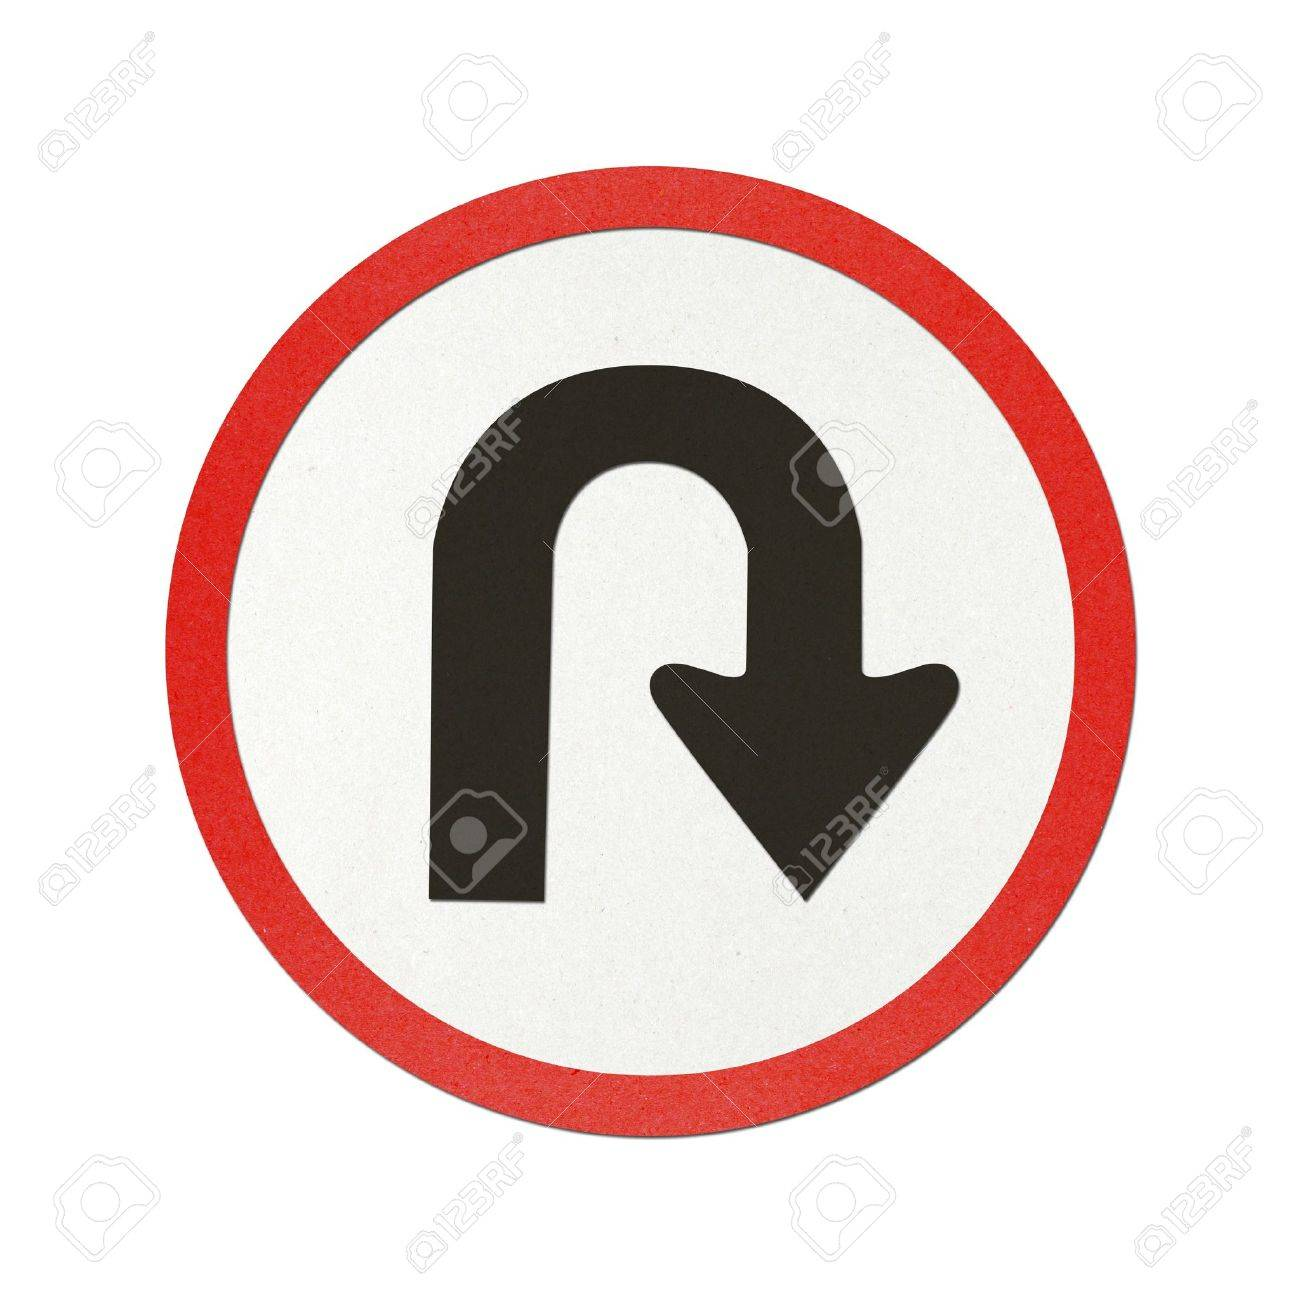 U – Turn traffic sign recycled paper on white background. Stock Photo - 10727858